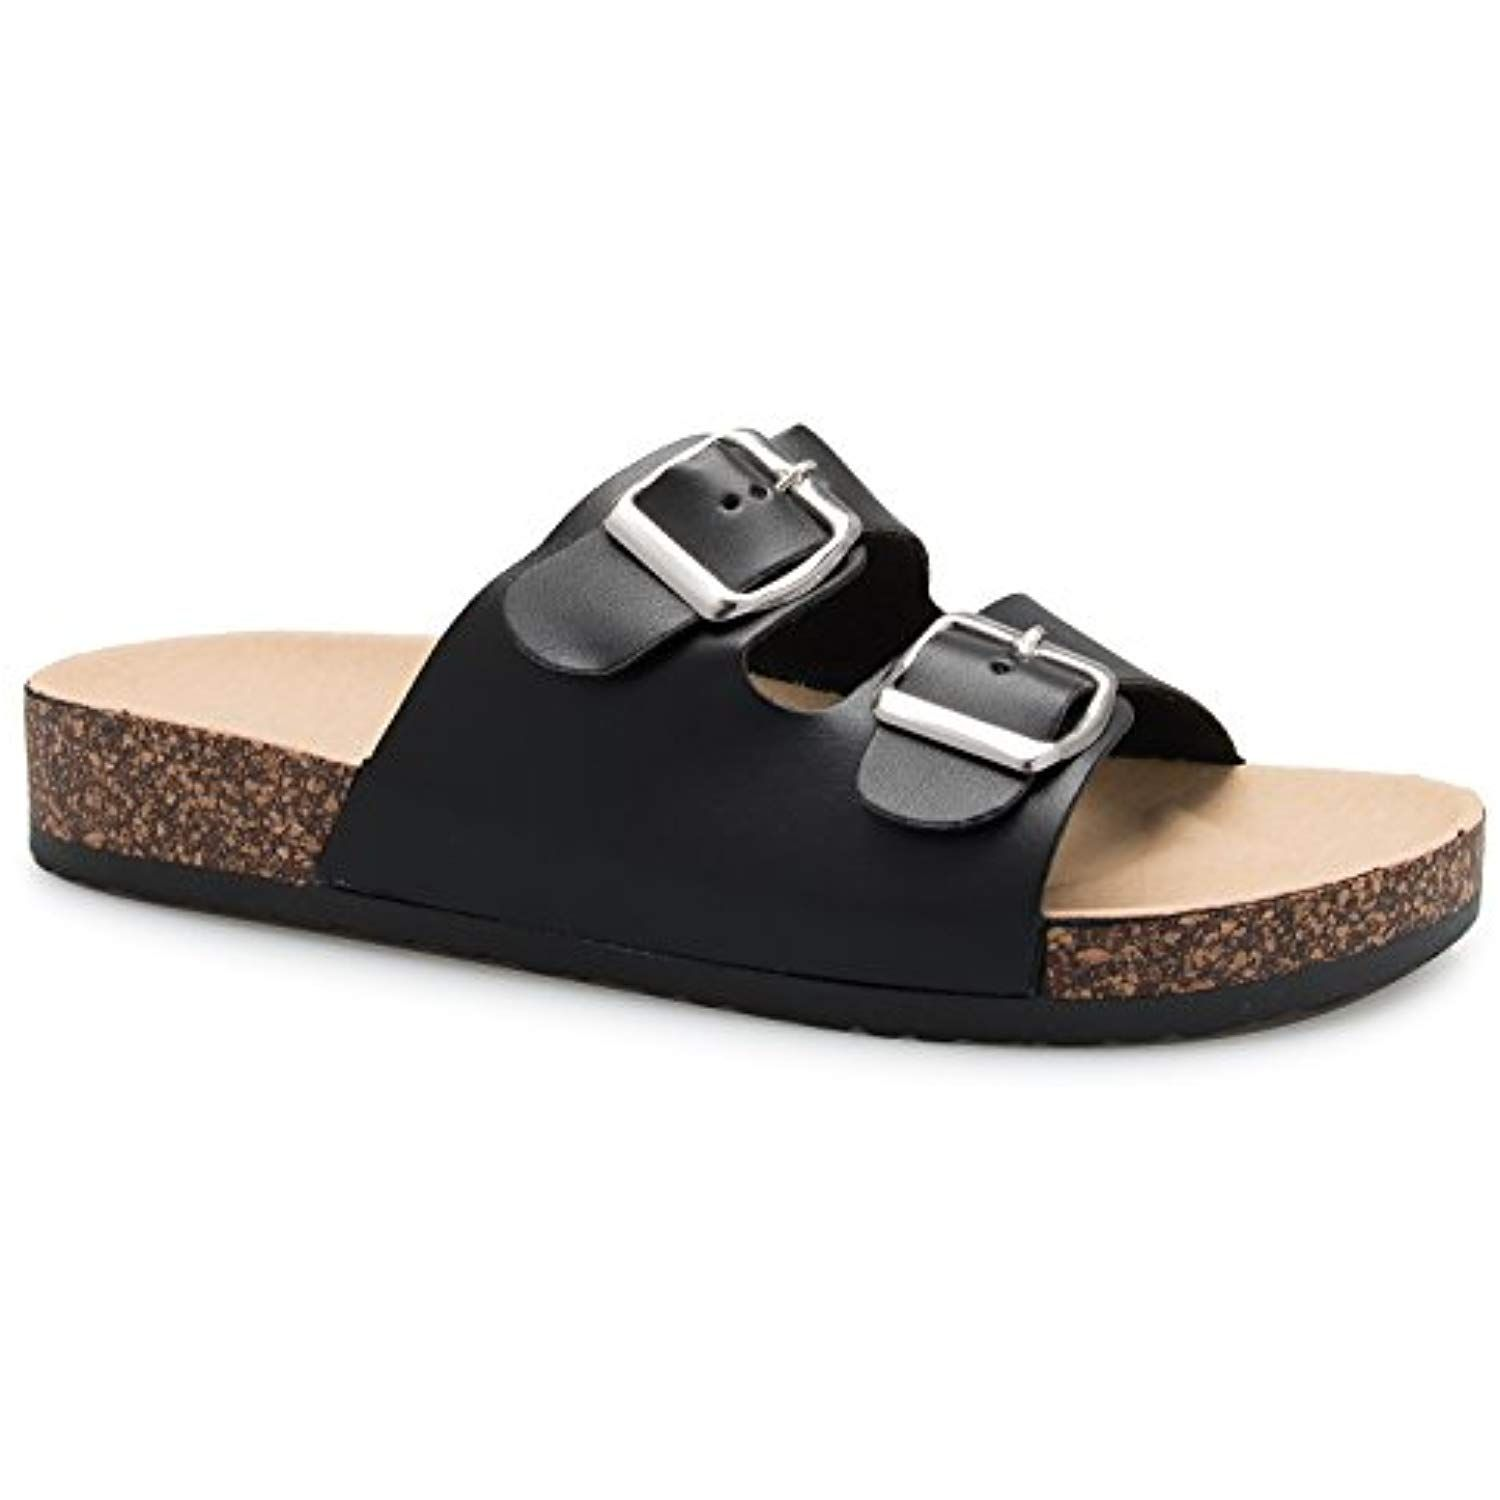 23c3e8818 Women s Summer Open Toe Double Buckle Strap Fashion Cozy Footbed Flat  Sandals     You can find out more details at the link of the image.